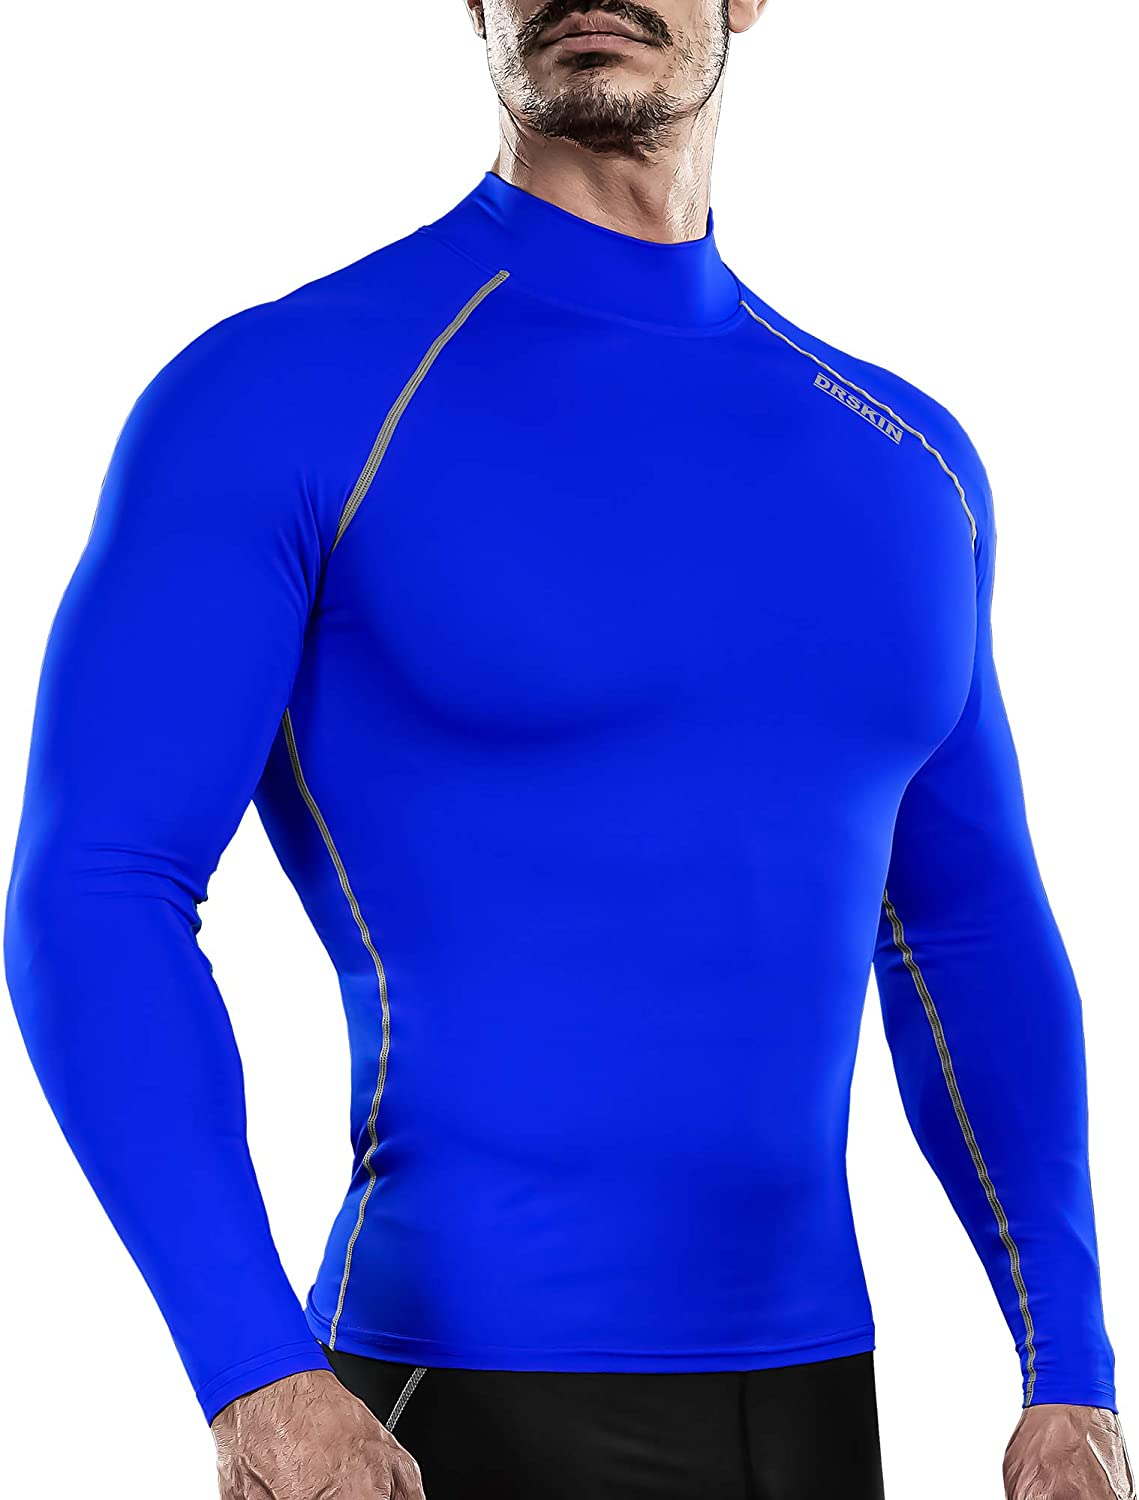 DRSKIN NEW before selling ☆ Men's Thermal Wintergear ColdGear Fleece Compression Sales of SALE items from new works